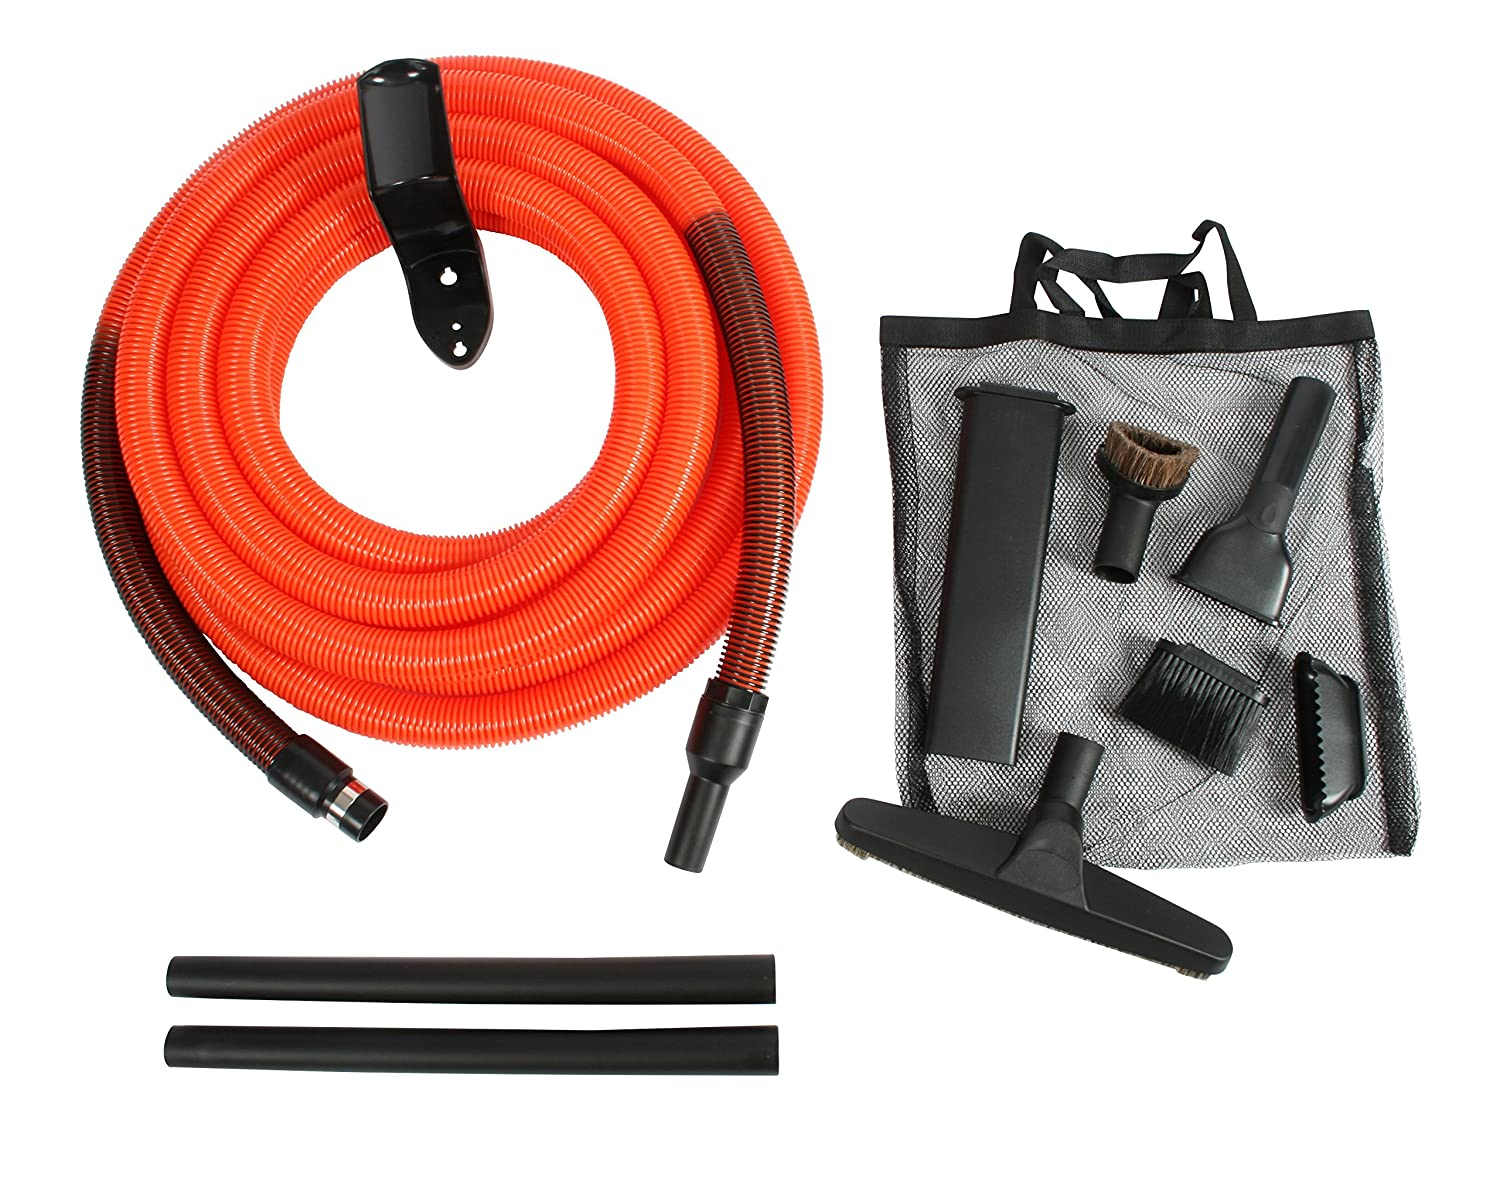 Cen-Tec Systems 93730 Central Vacuum Garage Attachment Kit with 30 ft. Hose, Black